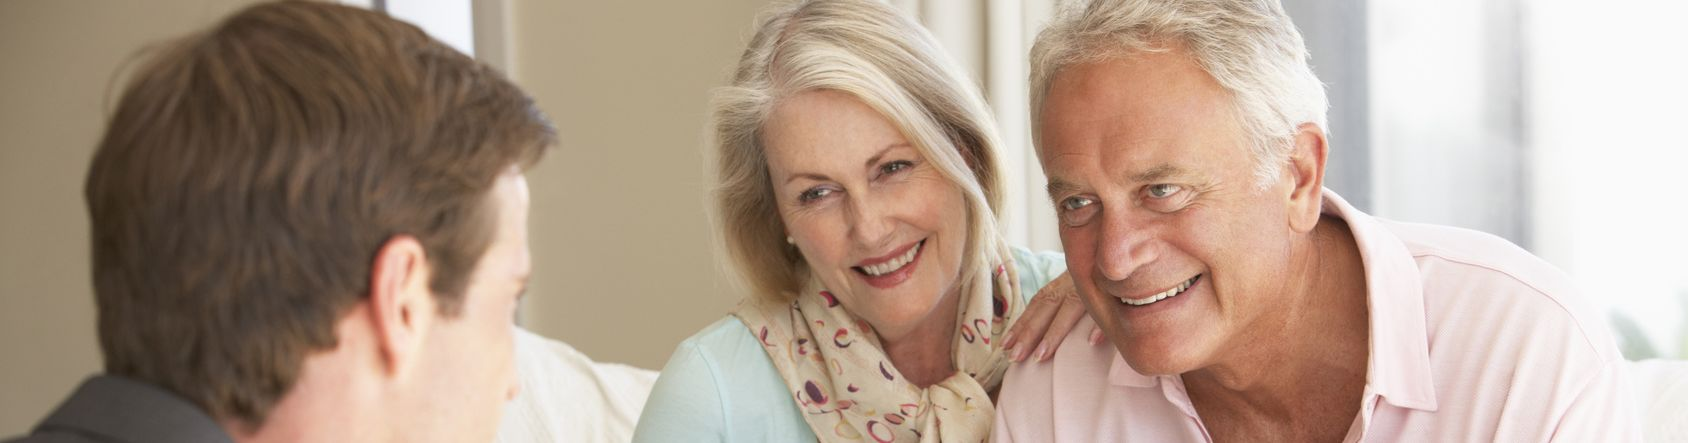 Financer son bien immobilier en etant senior  - Catalogue